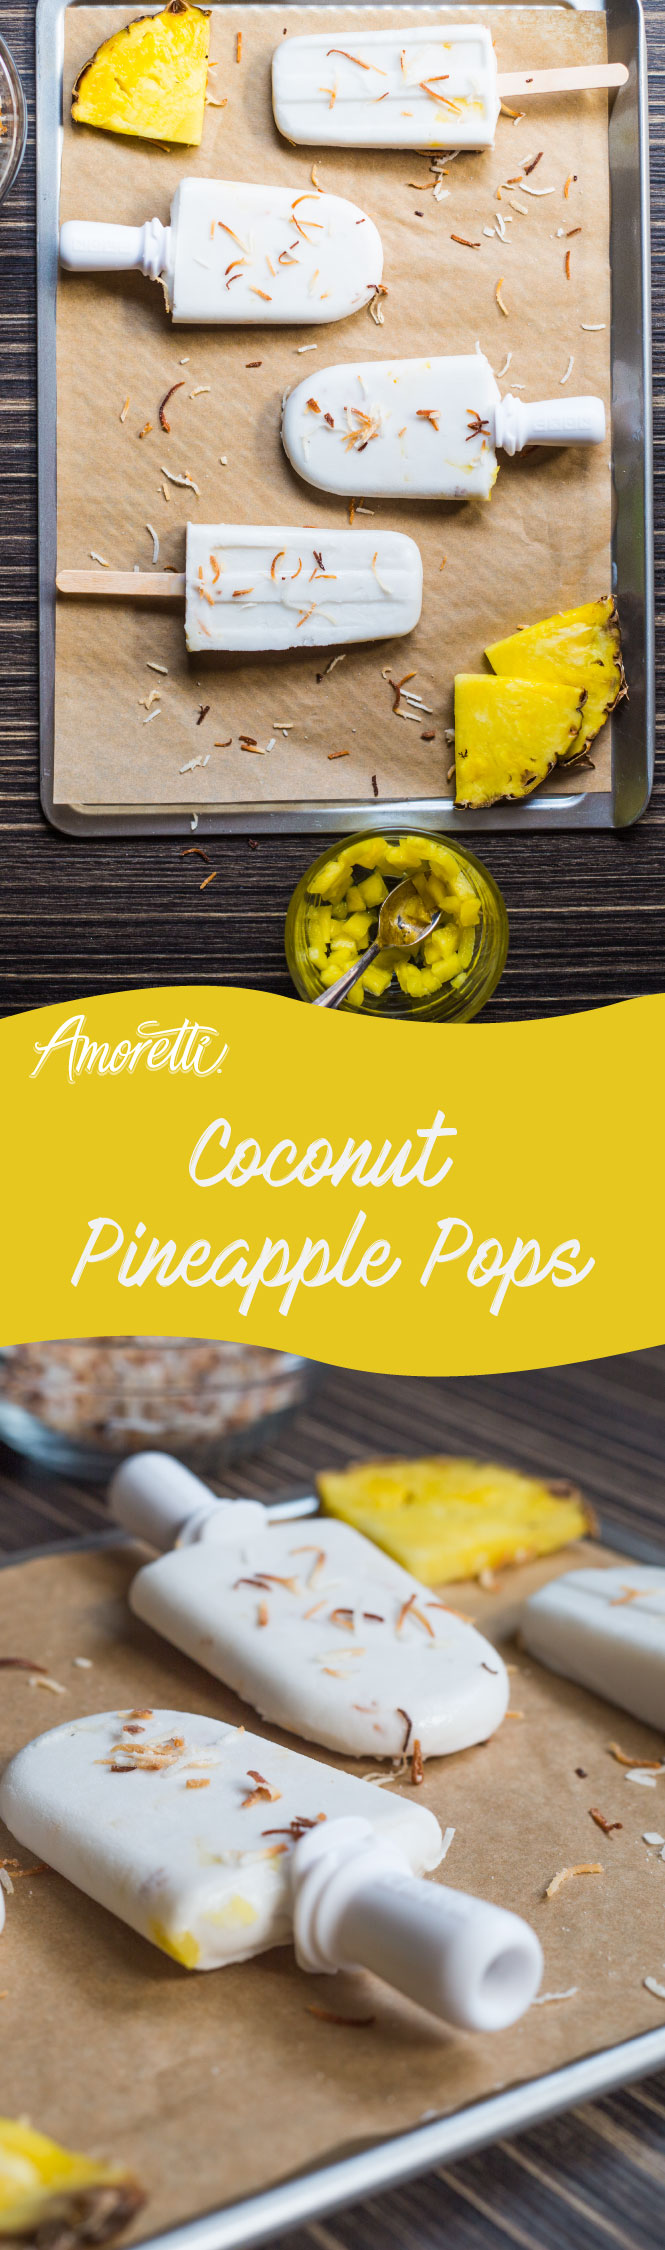 It's a hot summer day, and all you want is to cool down with an icy coconut pineapple snack!